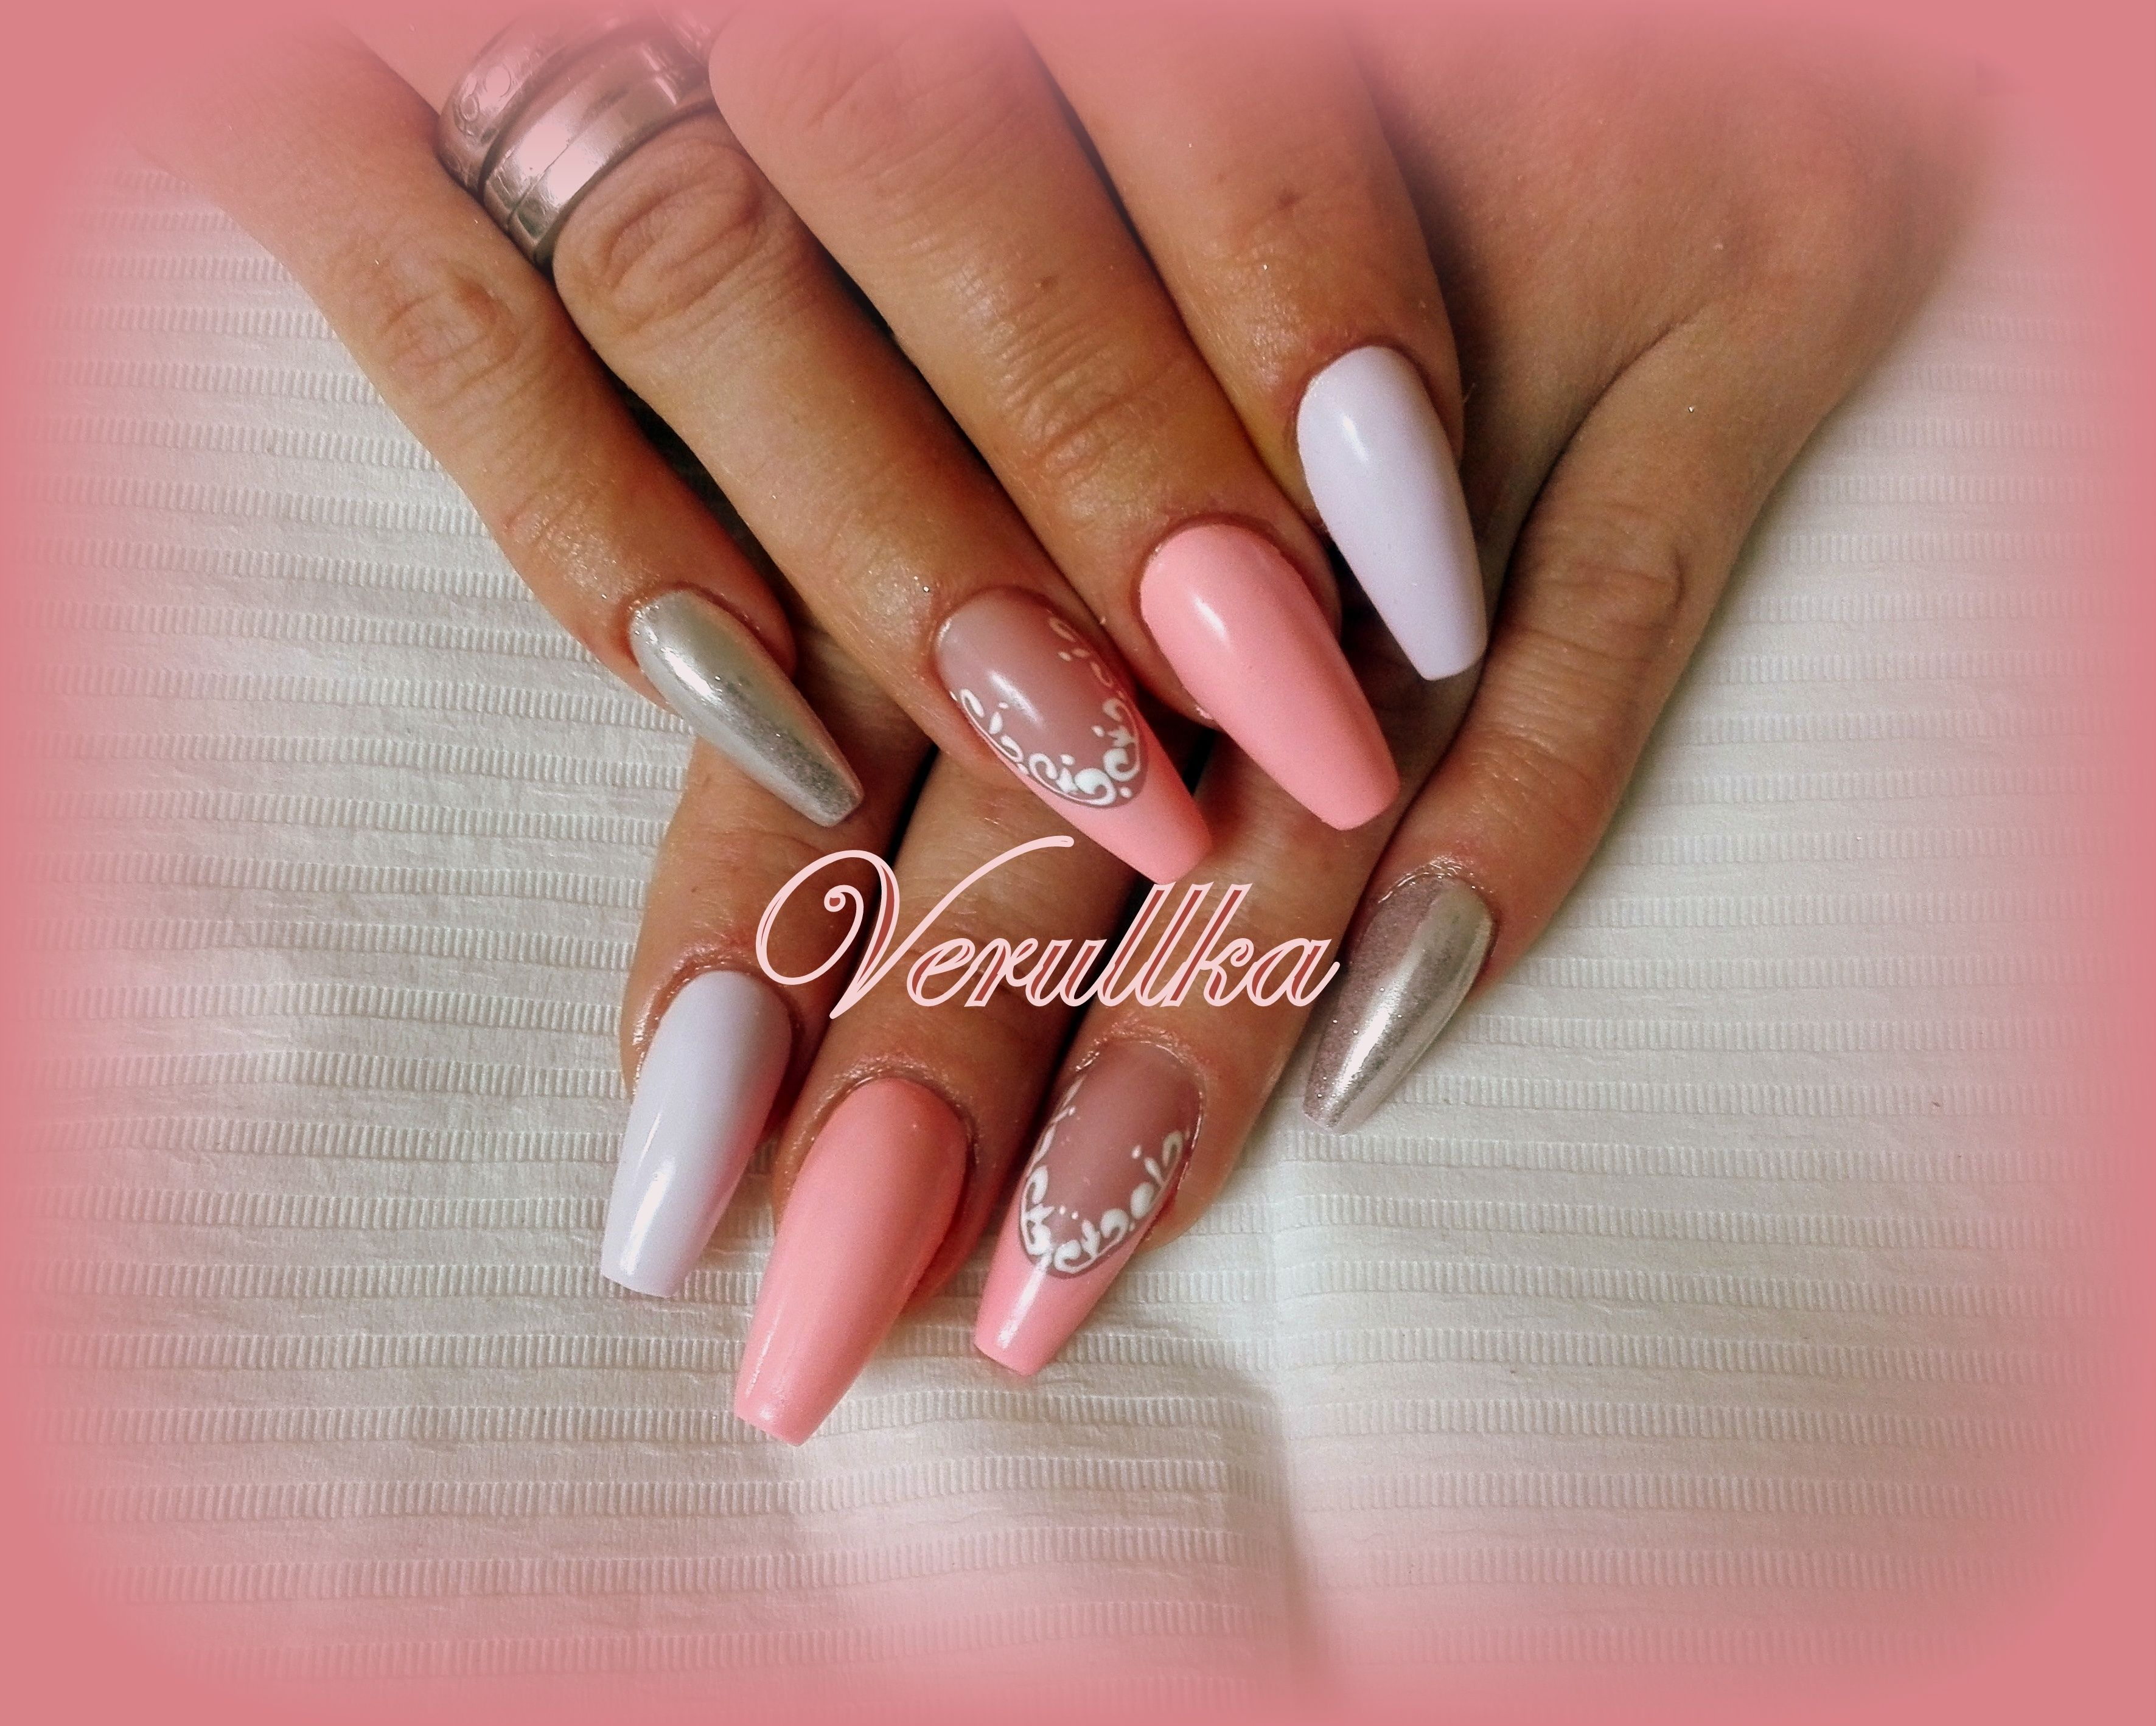 Peach Or Salmon Gel Nails With Decorated French Manicure